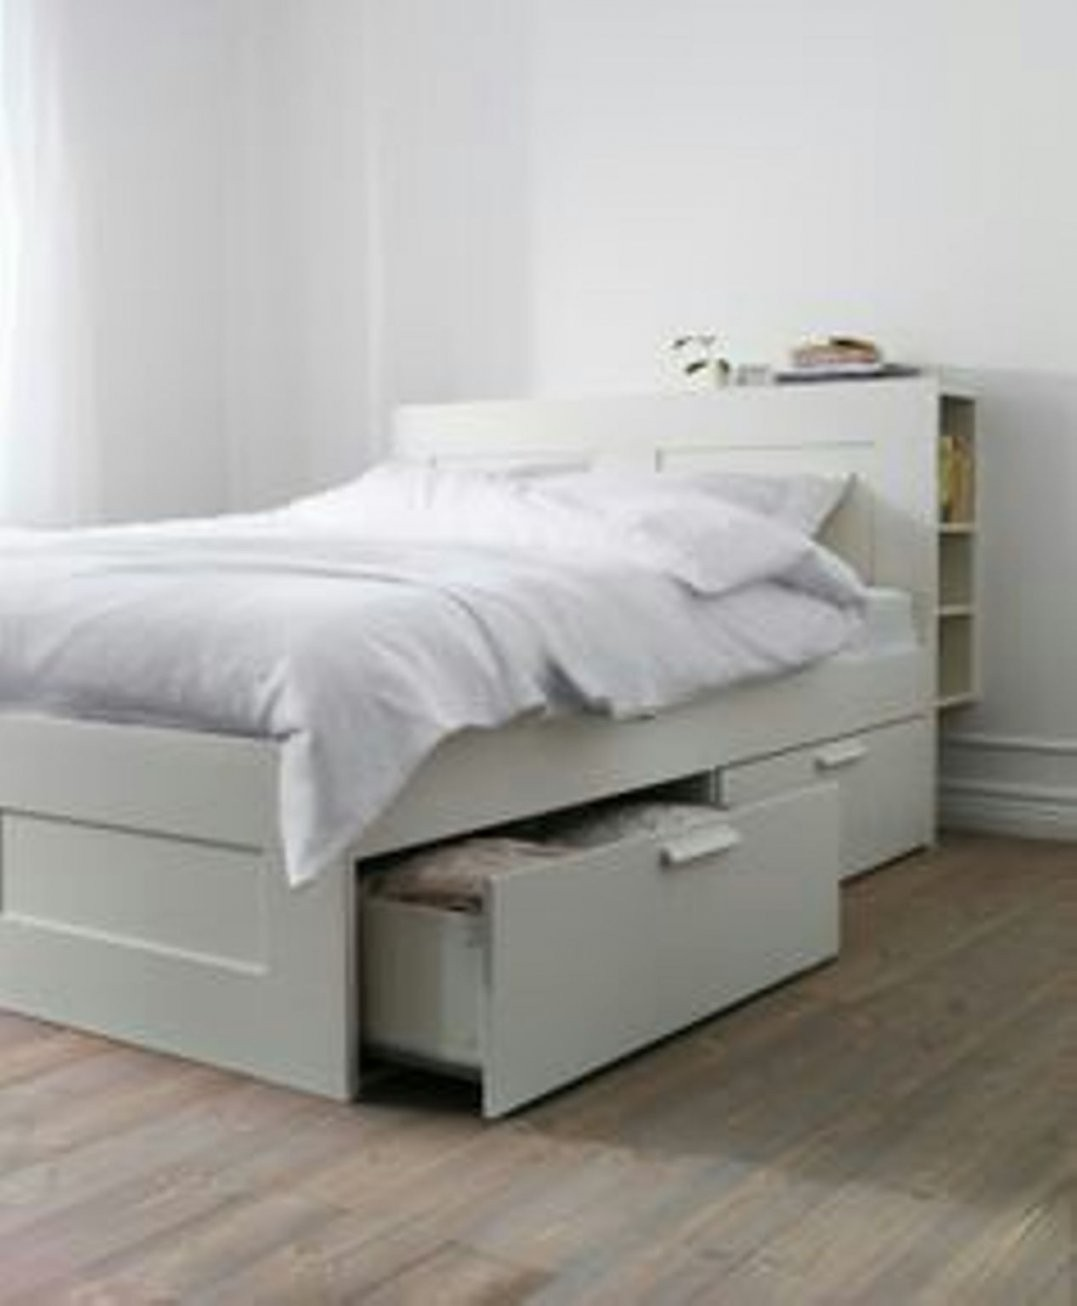 Ikea Brimnes Bed Frame 160 X 200 Cm With Storage And Headboard In von Ikea Brimnes Bett 160X200 Photo